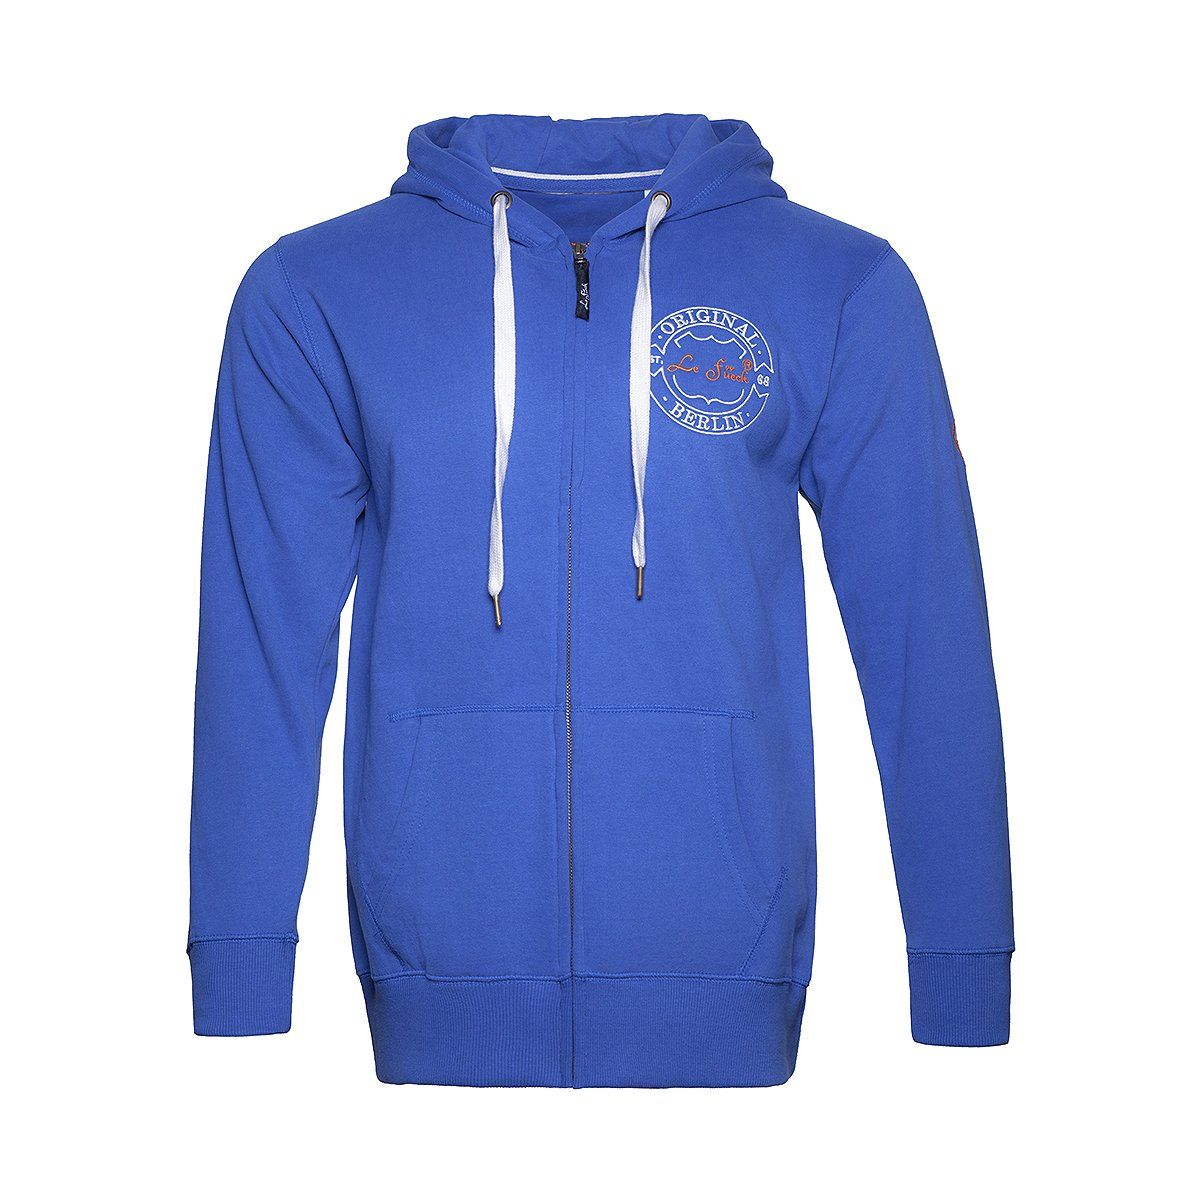 LFM Hoody Star Zip 84392 – Royal